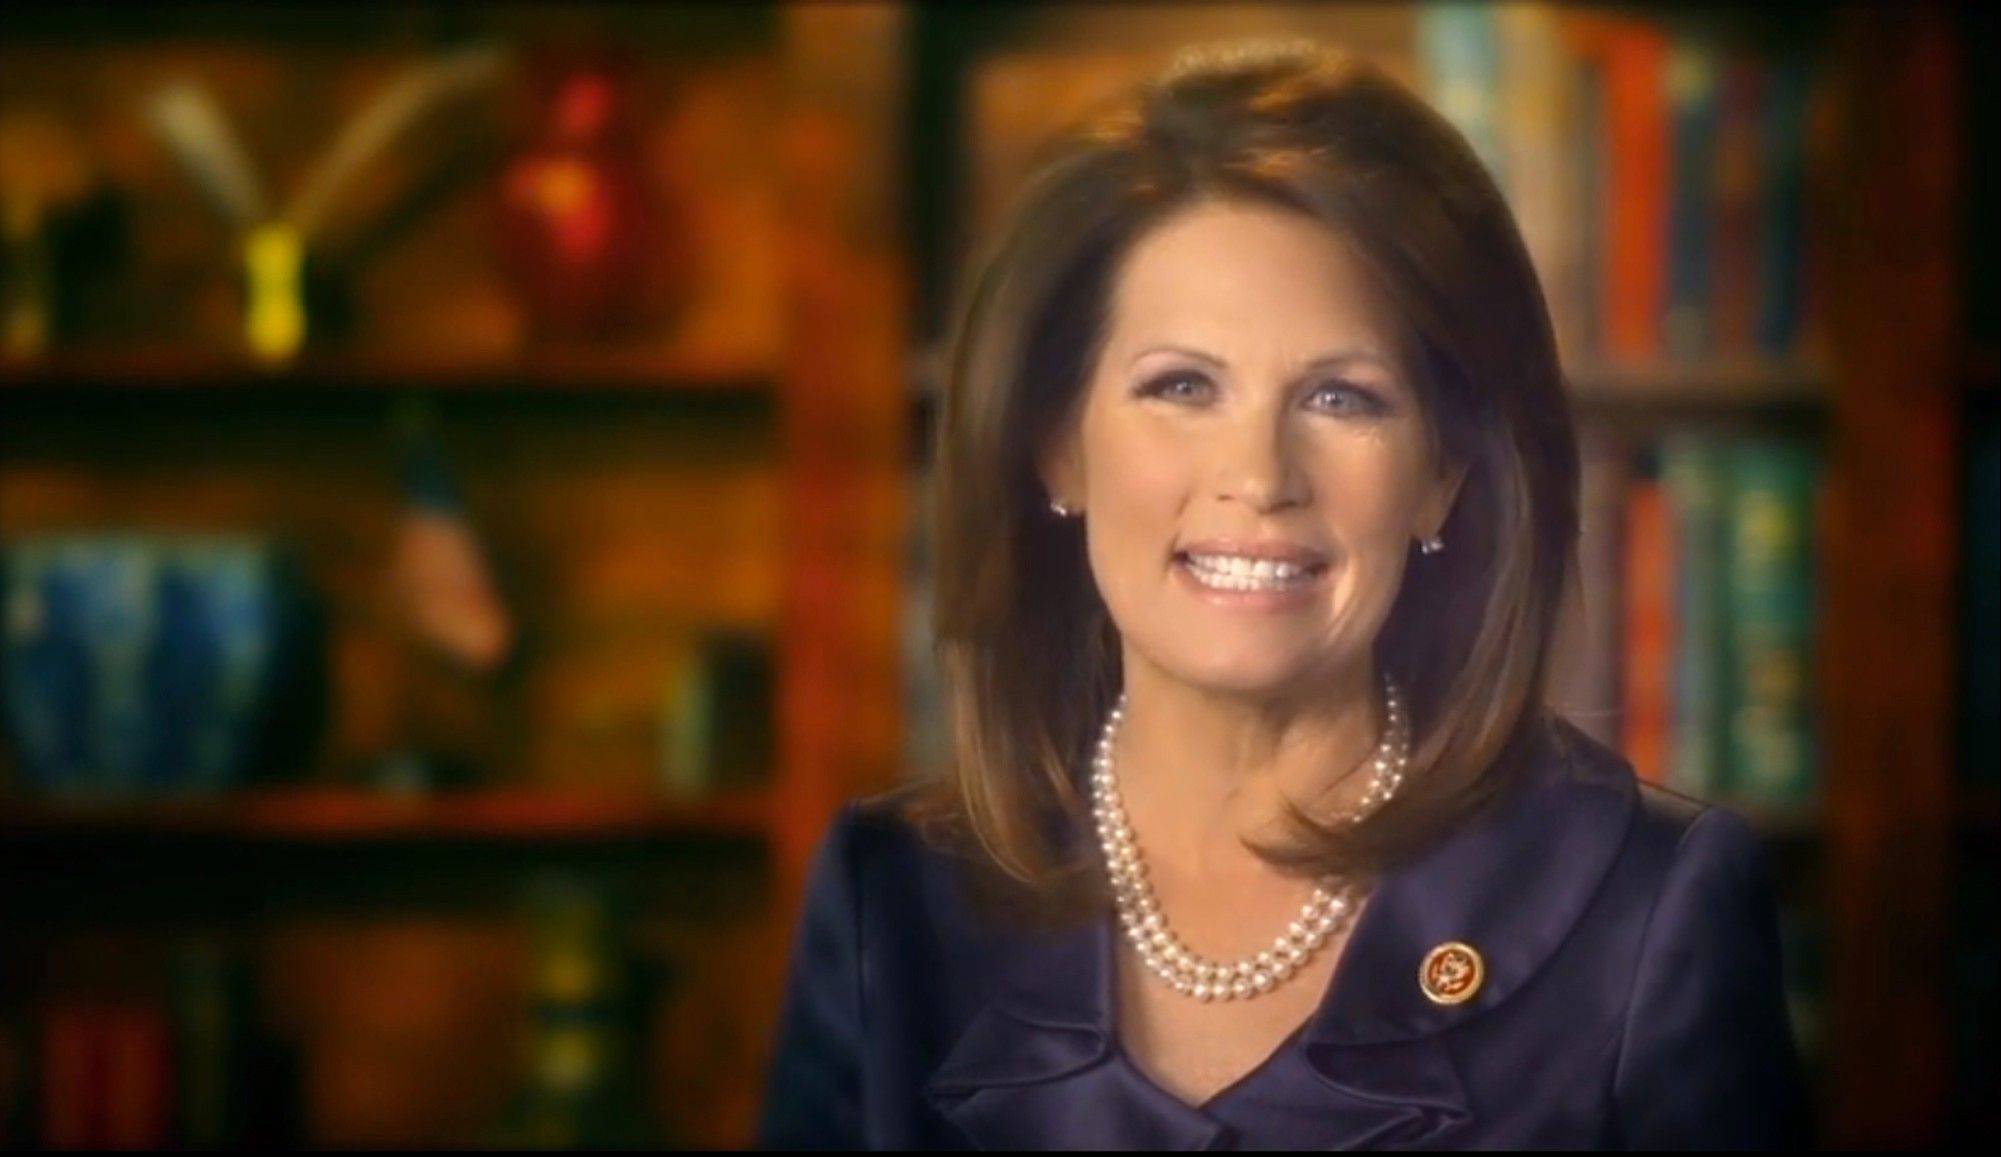 In a video on her website, Rep. Michele Bachmann said Wednesday she will not seek re-election, explaining the decision had nothing to do with concerns about being re-elected or with recent inquiries into her 2012 presidential campaign finances.